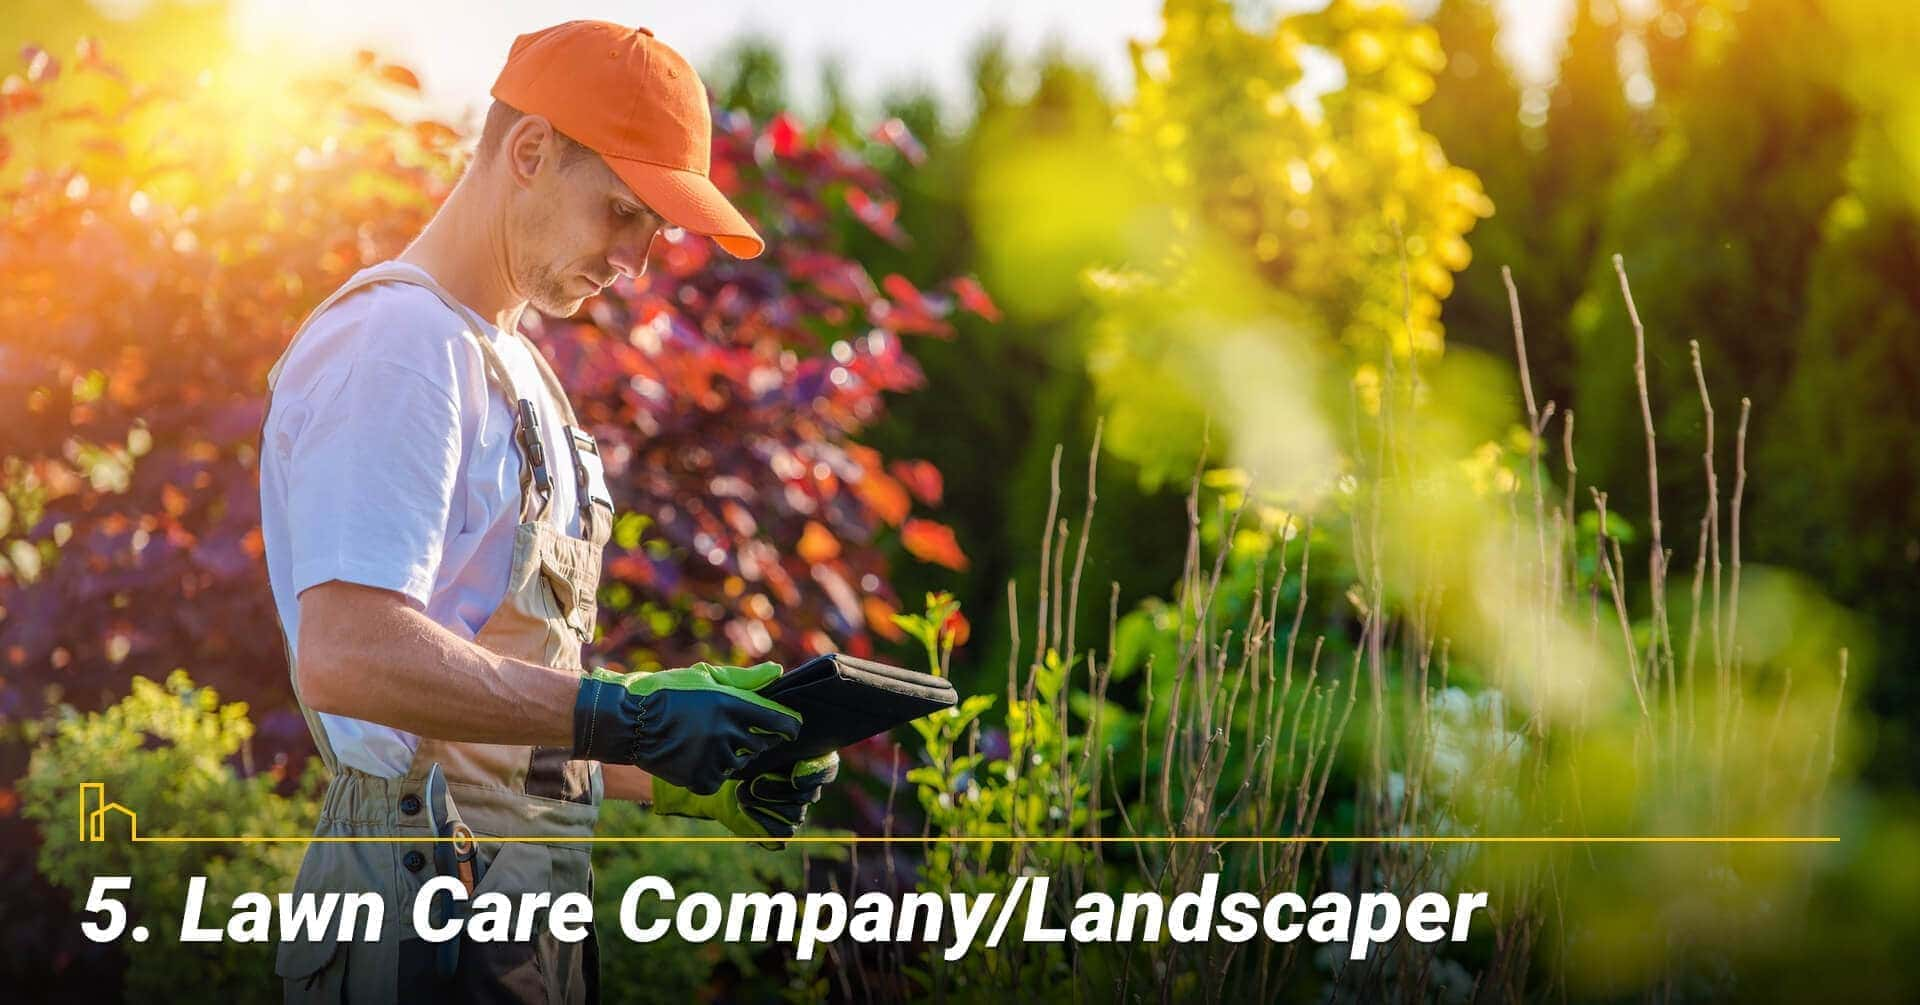 Lawn Care Company/Landscaper, get help maintain your lawn